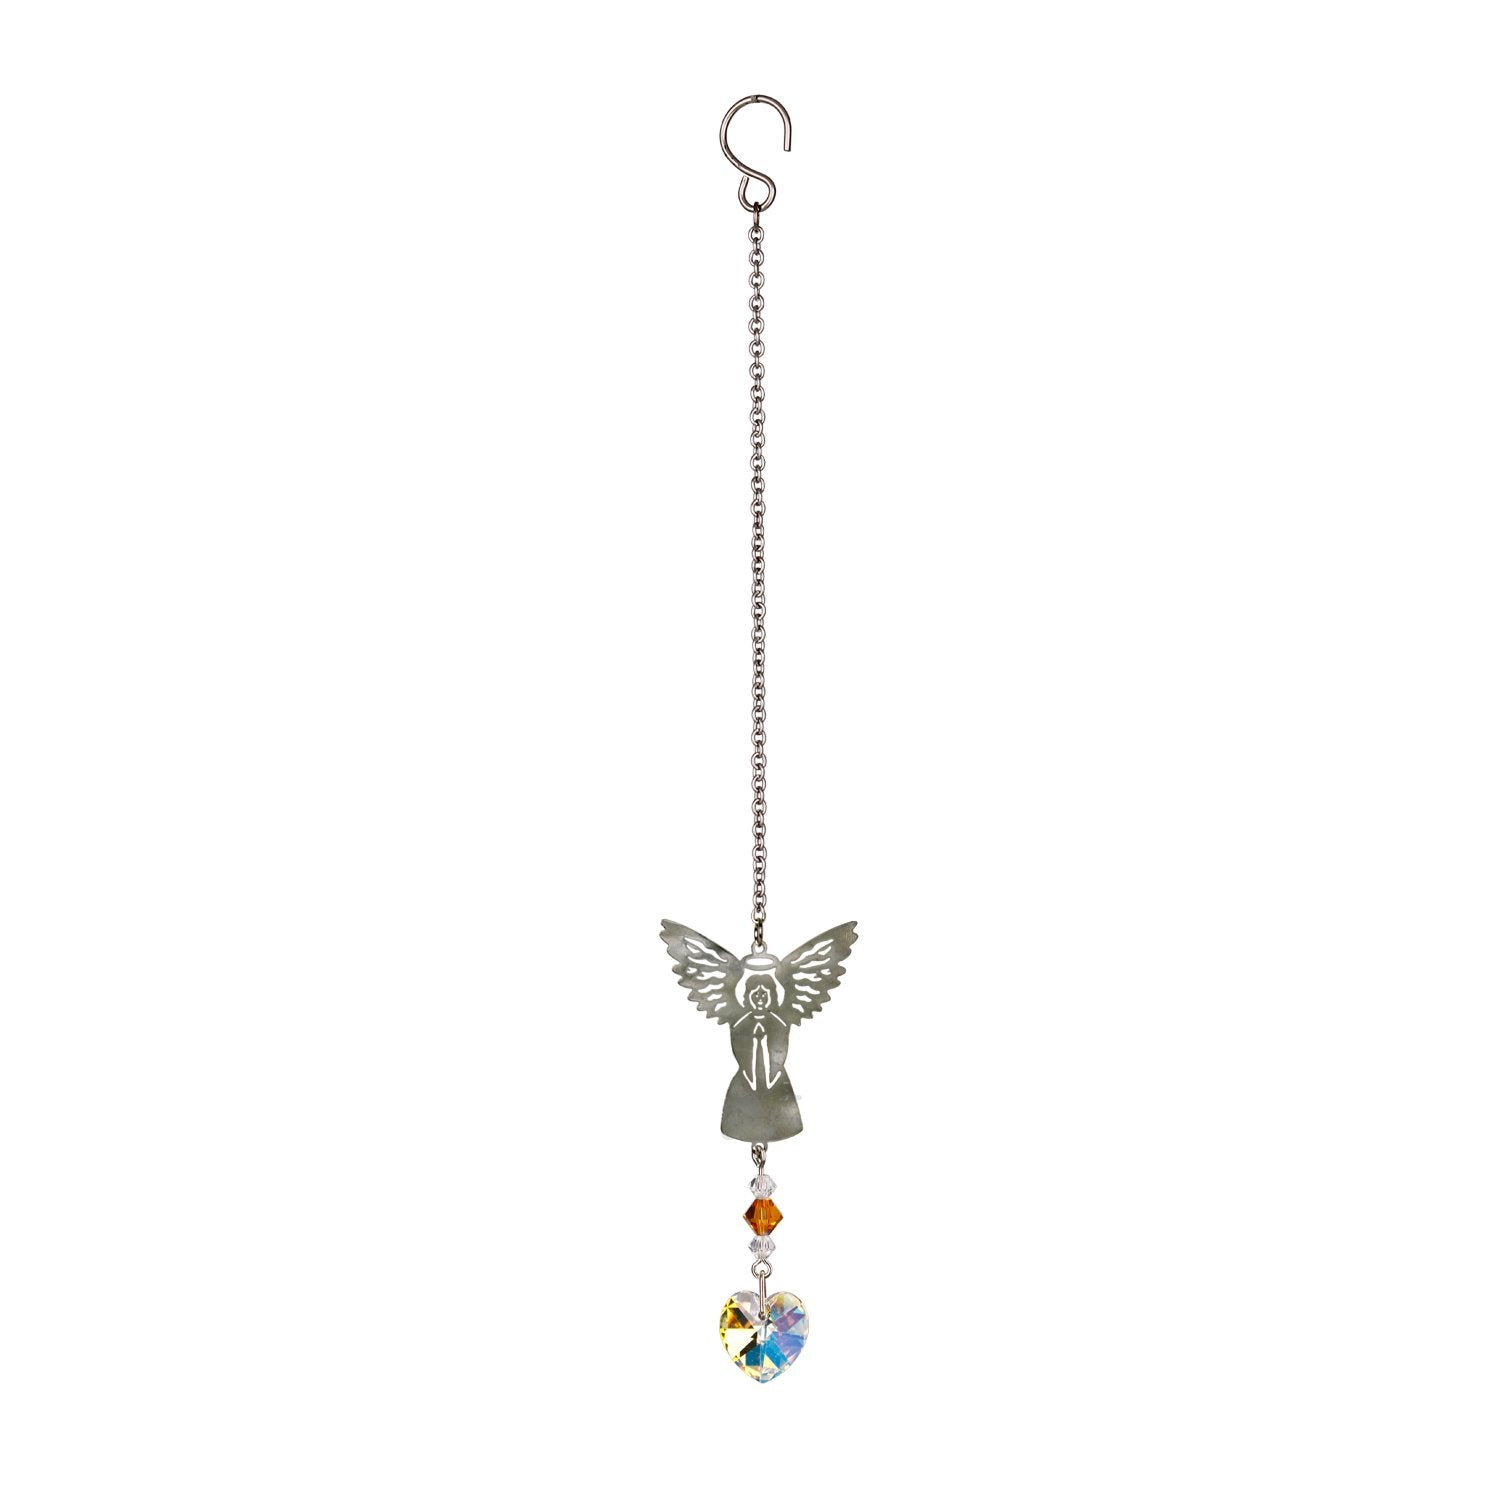 Birthstone Angel Crystal Suncatcher - November full product image